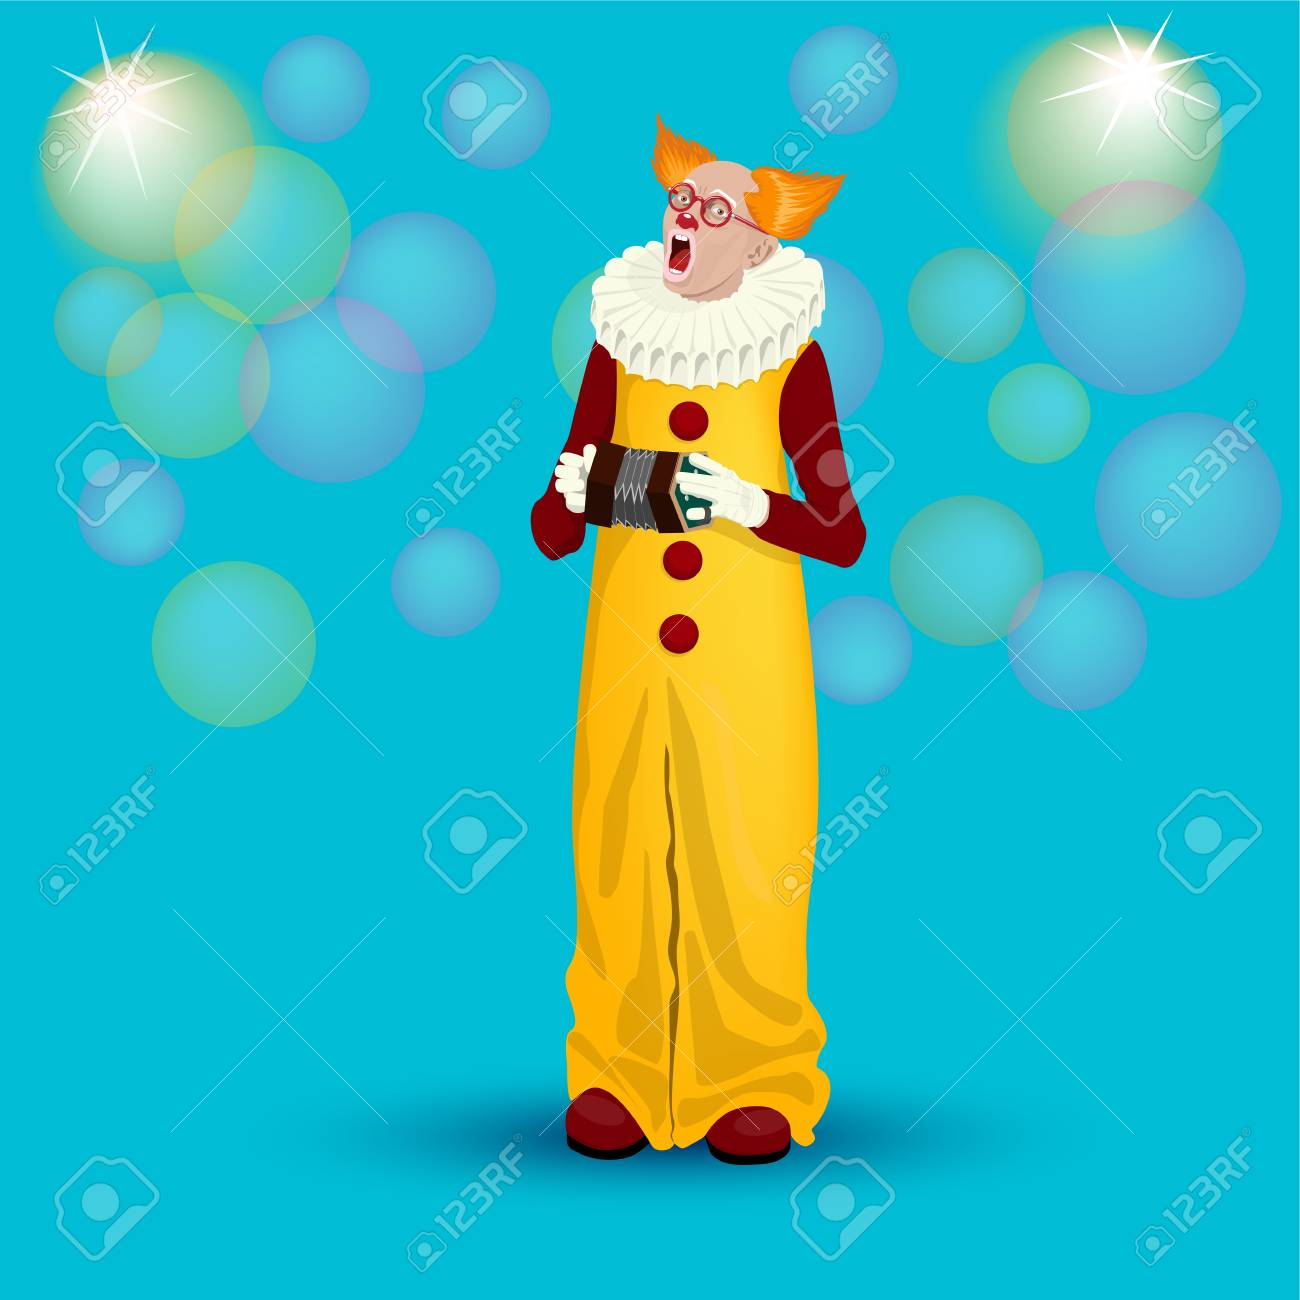 Funny singing clown with an accordion on a turquoise background funny singing clown with an accordion on a turquoise background for greeting cards posters m4hsunfo